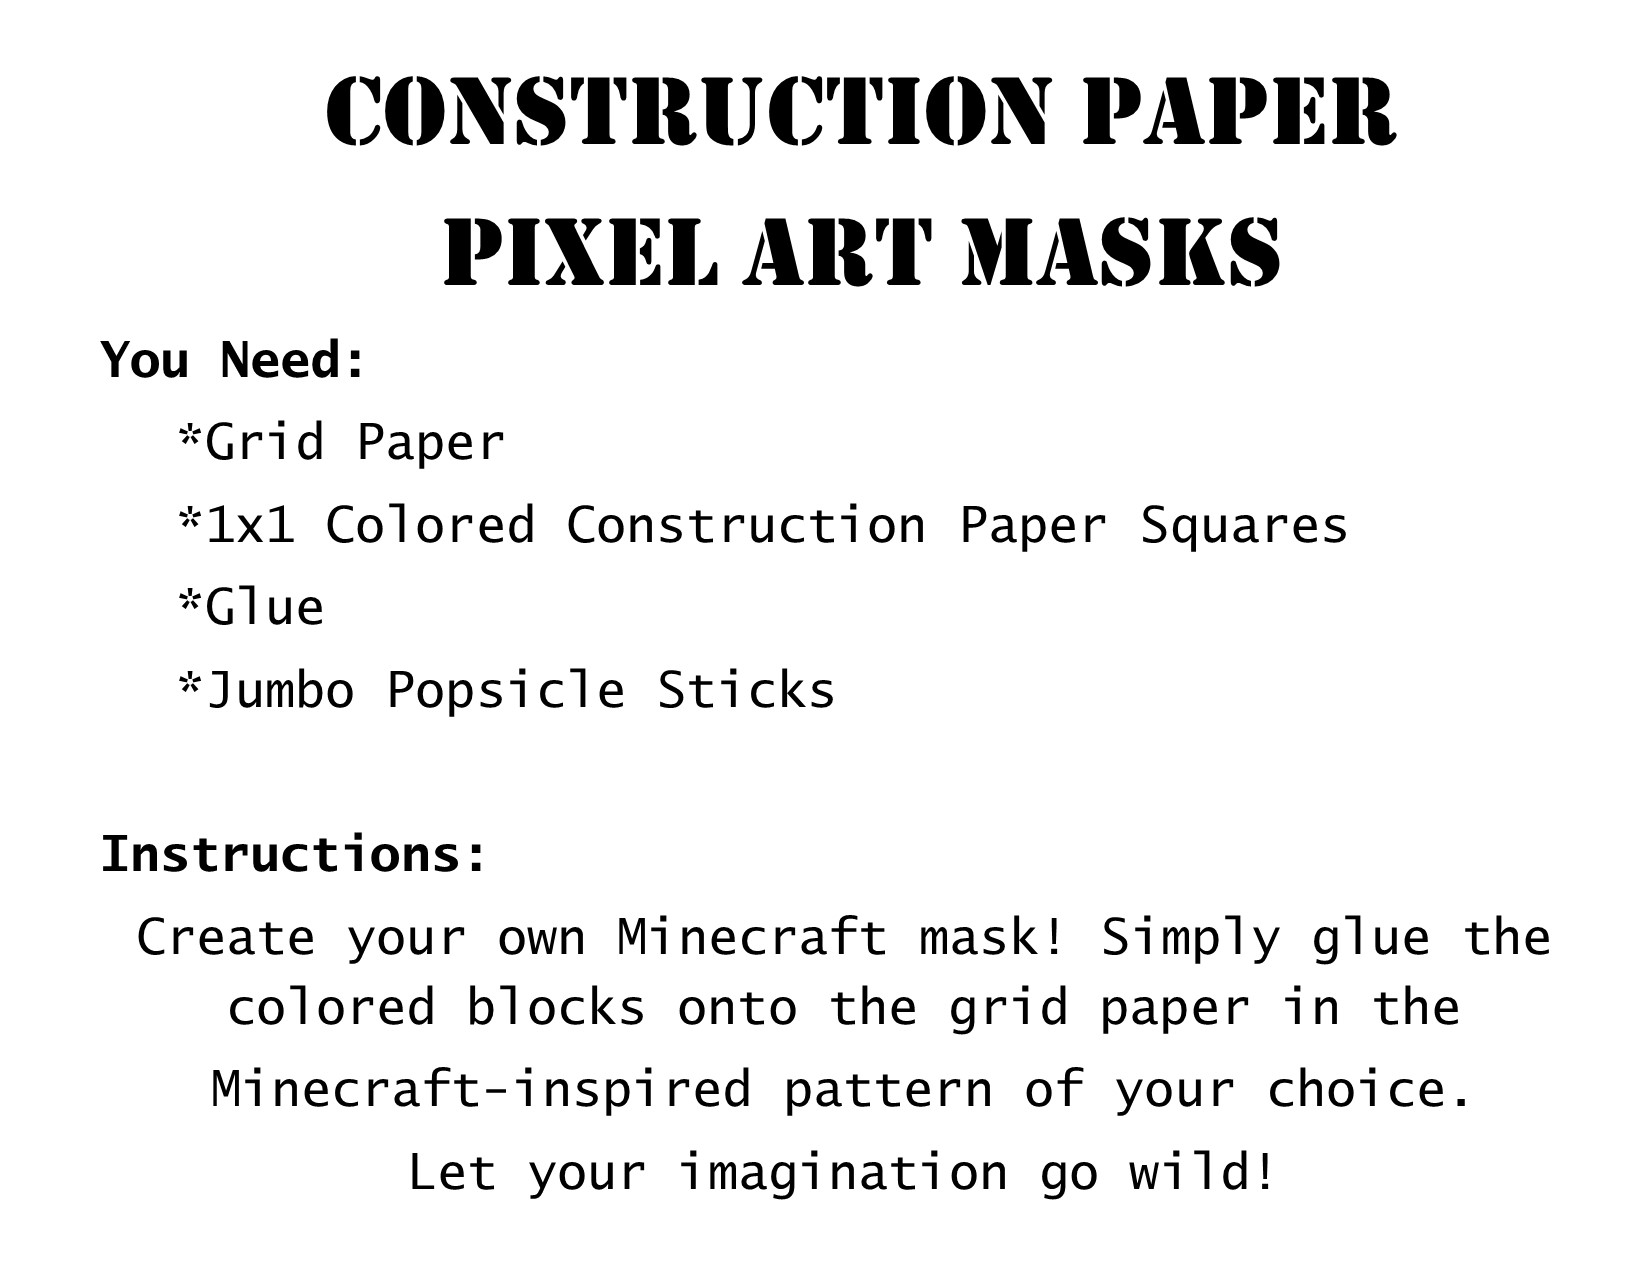 How to make Minecraft construction paper masks